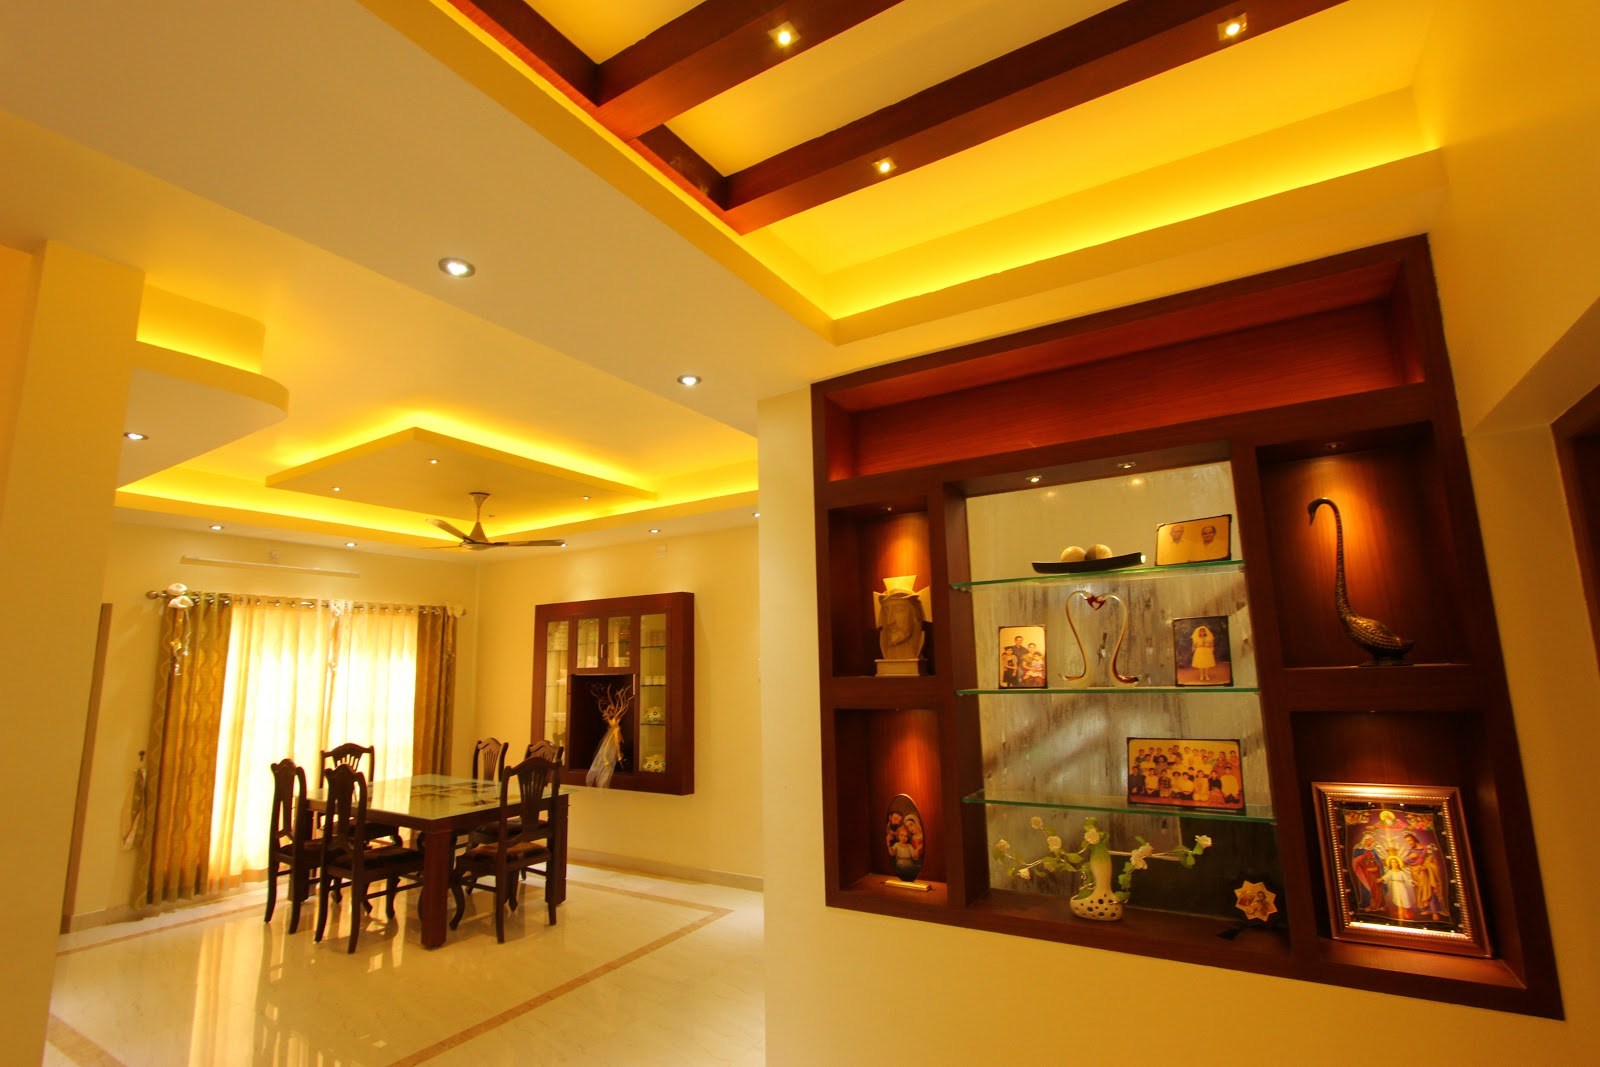 Shilpakala interiors award winning home interior design for Interior design companies